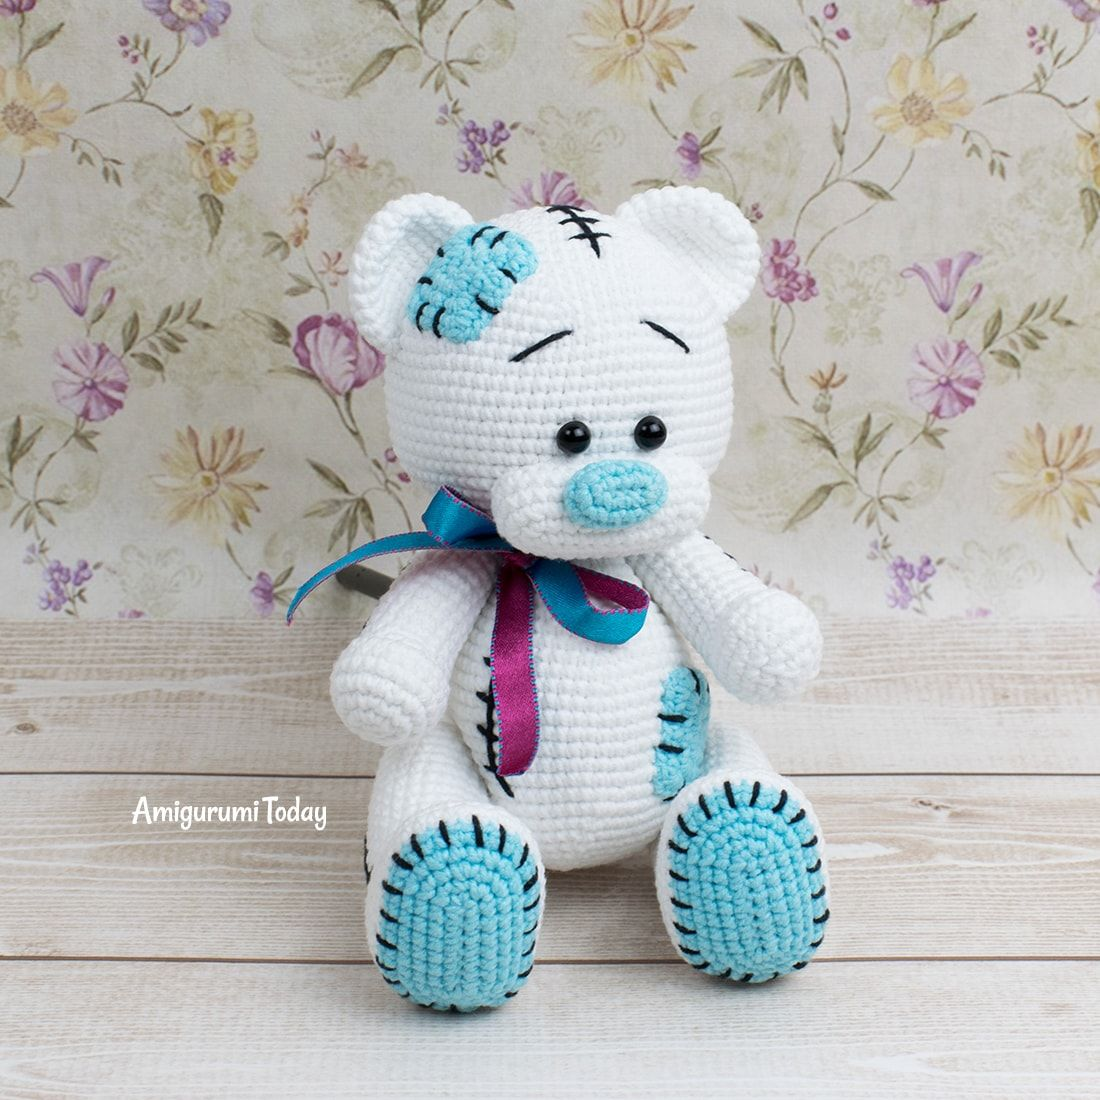 Free Teddy Bear crochet pattern - Amigurumi Today